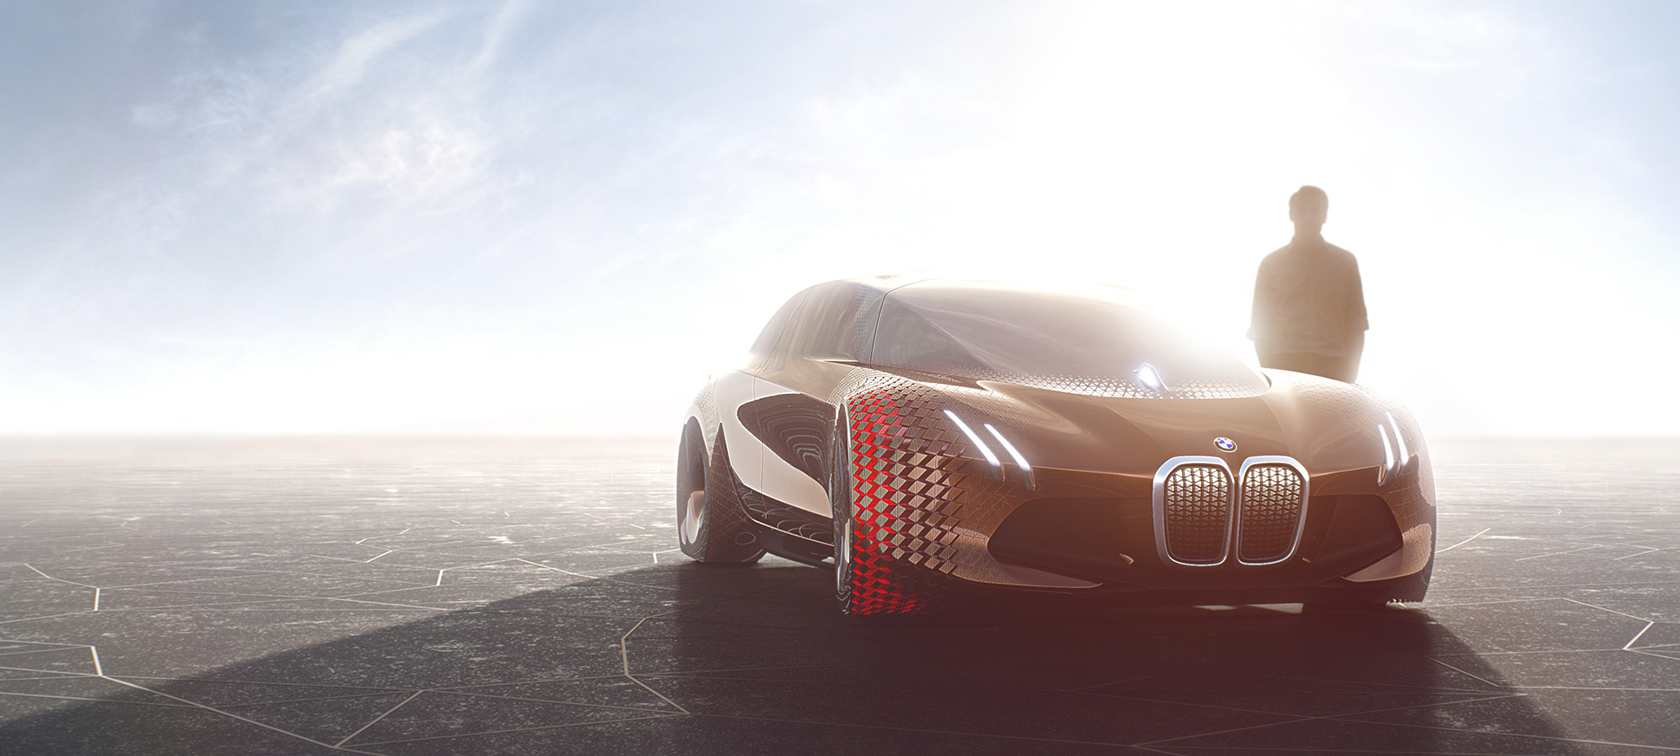 BMW Upcoming Car concept - BMW i8Roadster, BMW iNext info